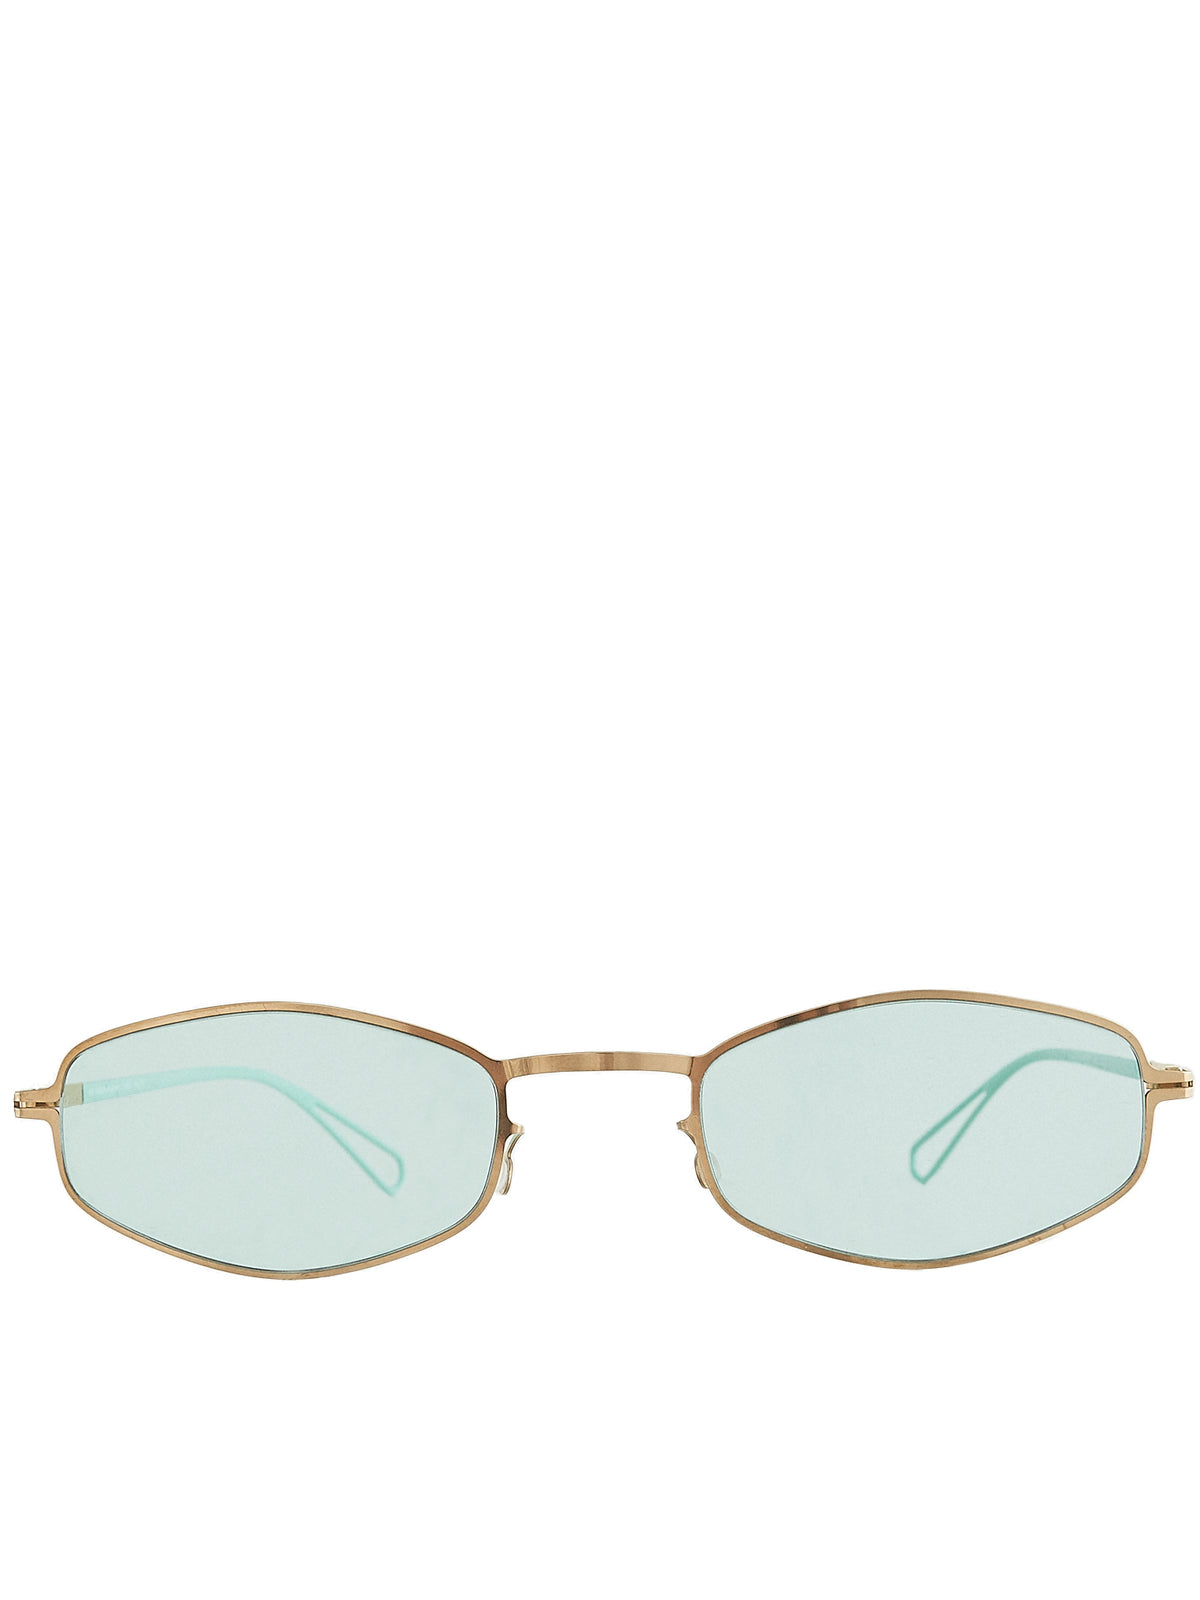 'Silver' Oval-Frame Sunglasses (SILVER-CHAMPAGNEGOLD-POW-9-GRN)